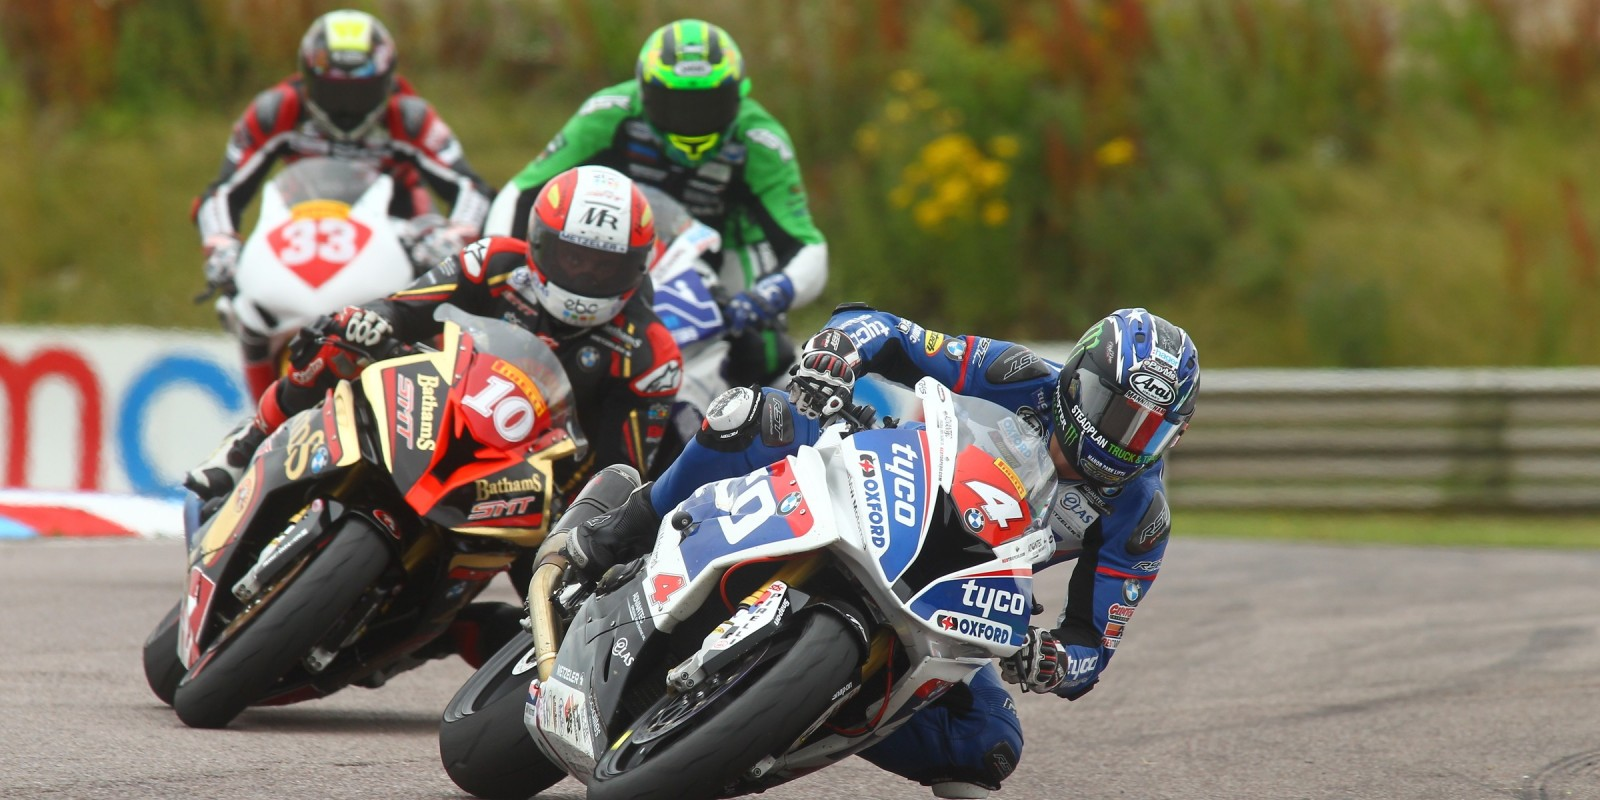 Images from BSB Round 6 Thruxton 2016